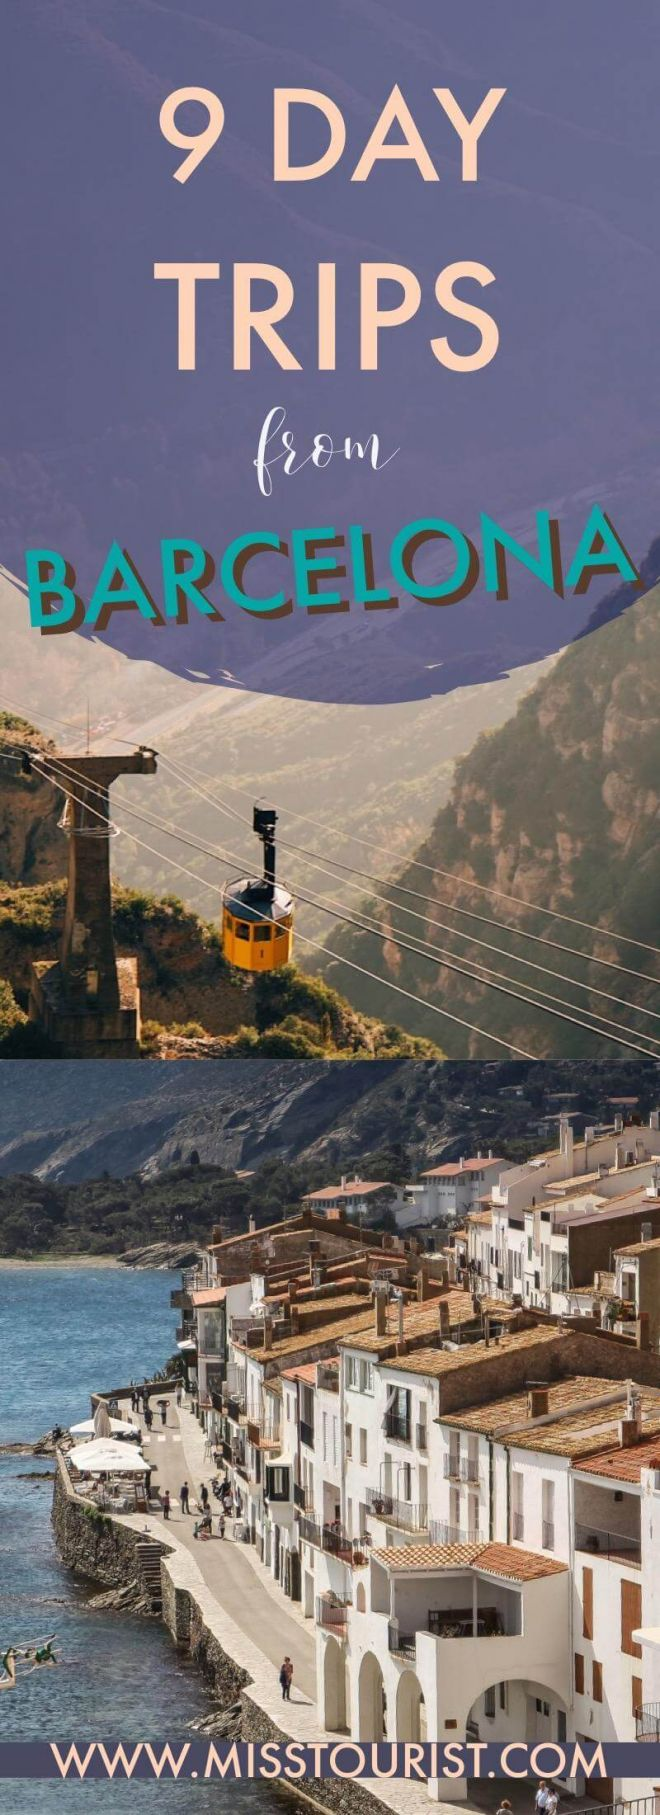 9 day trips from Barcelona pin it for later 1